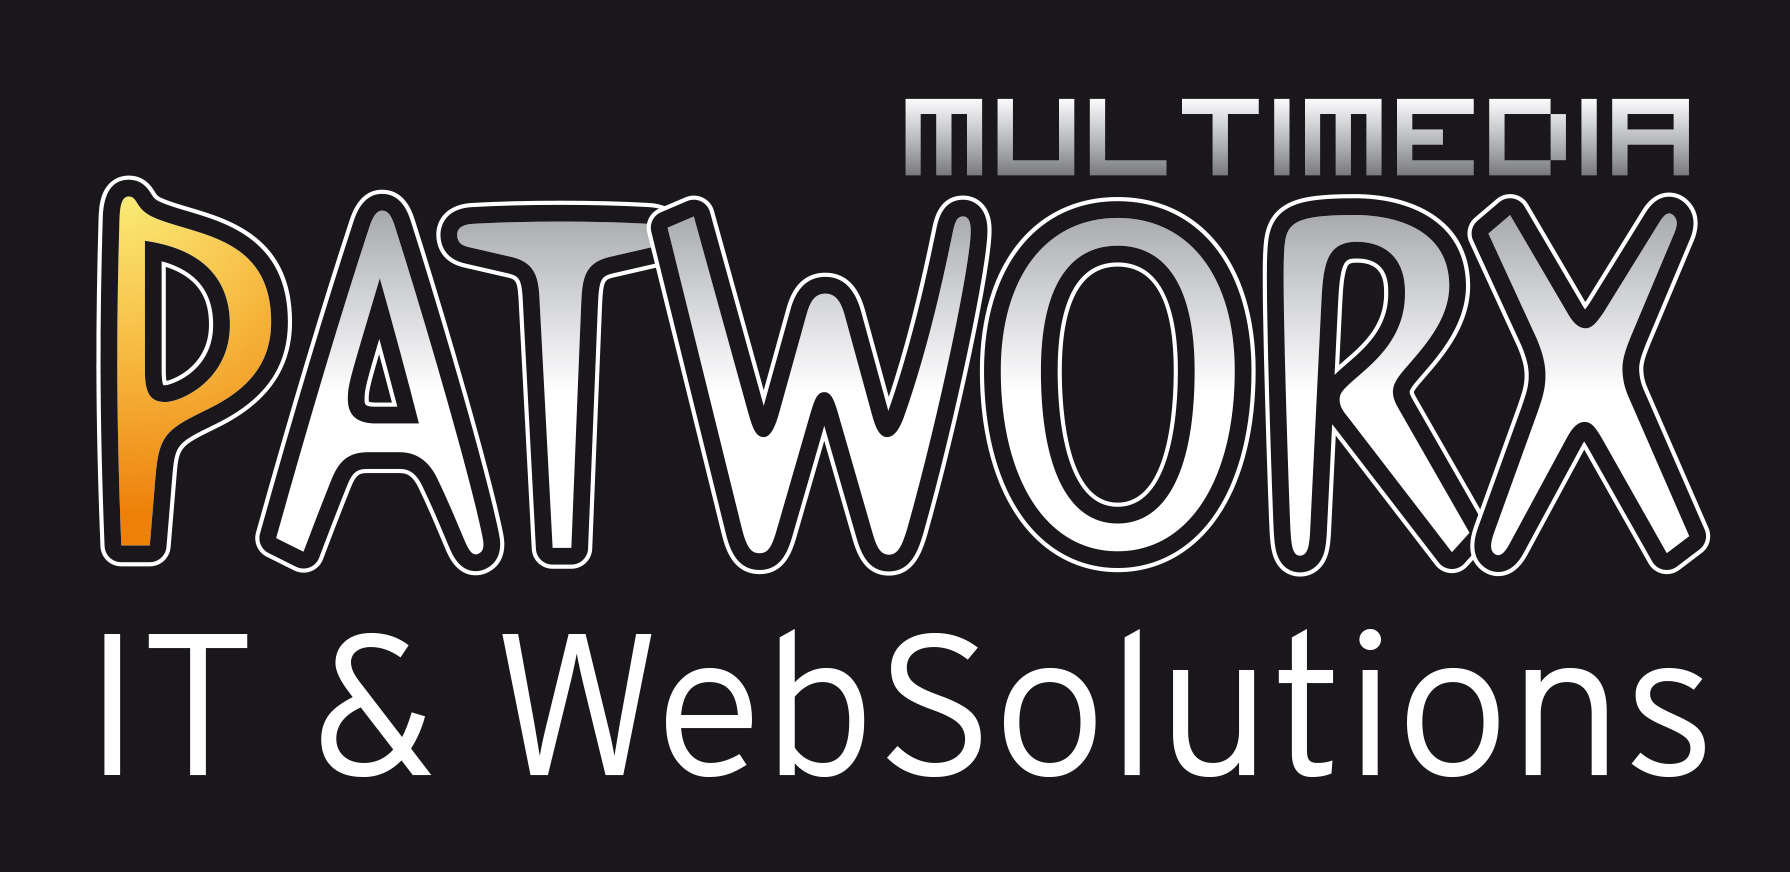 patworx multimedia